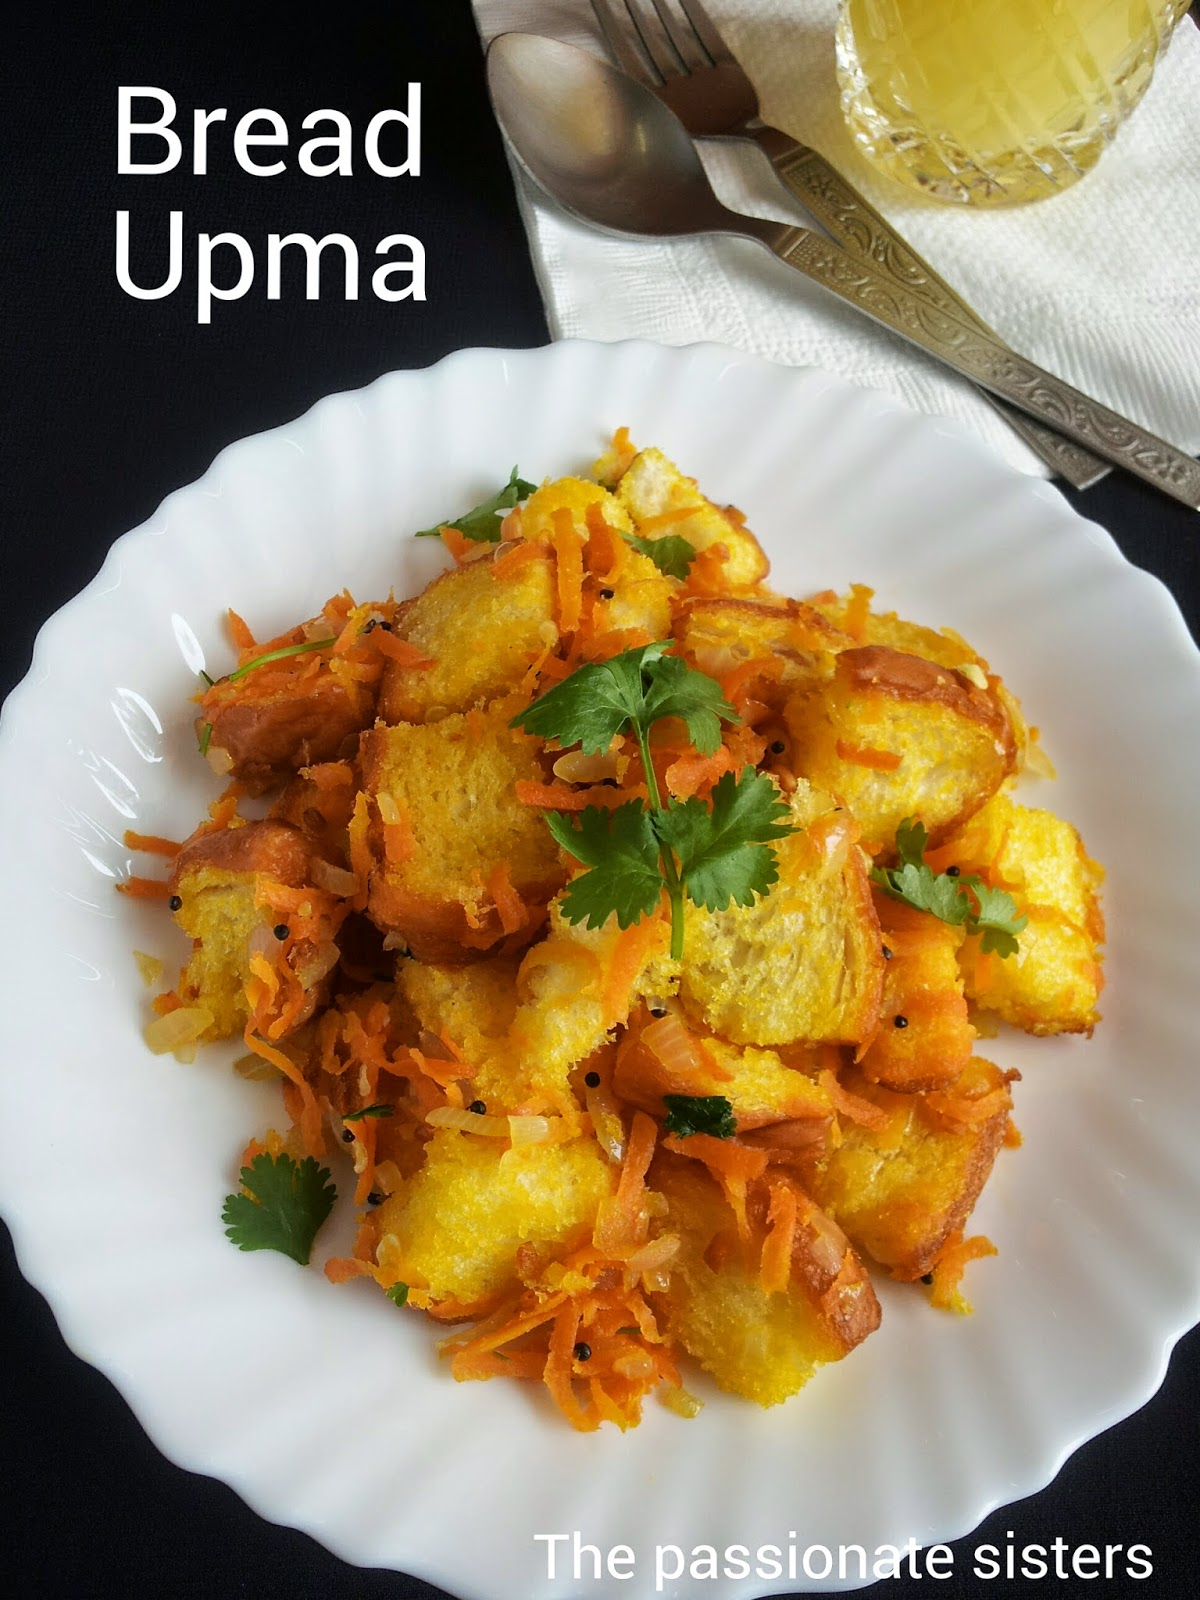 how to prepare bread upma